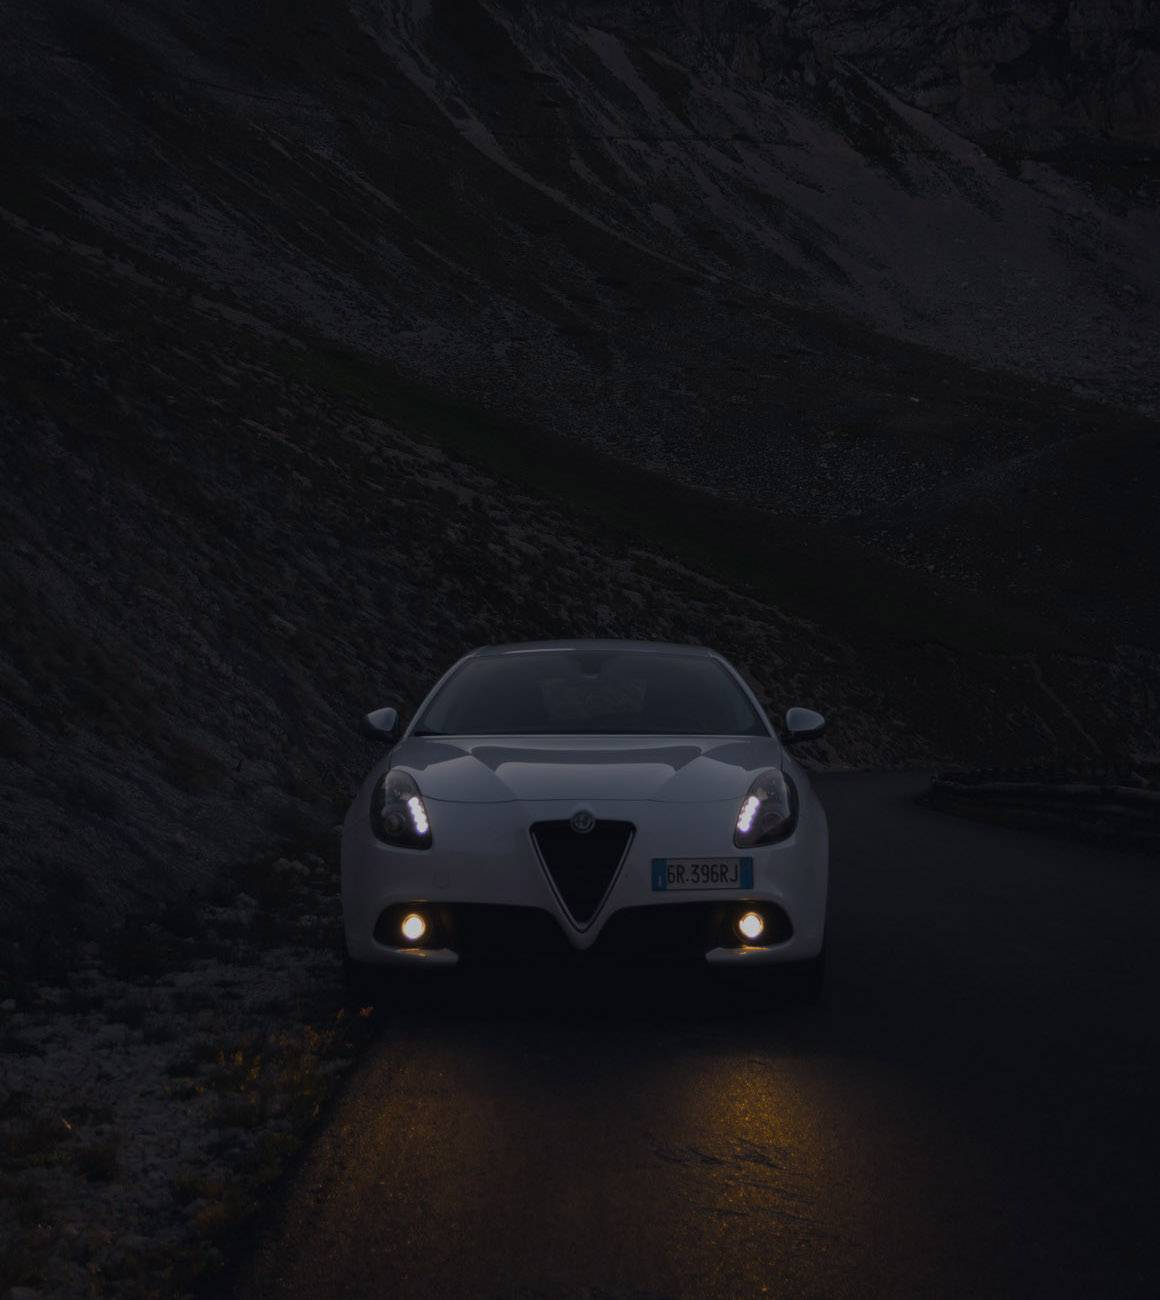 Compare Alfa Romeo insurance costs for all models